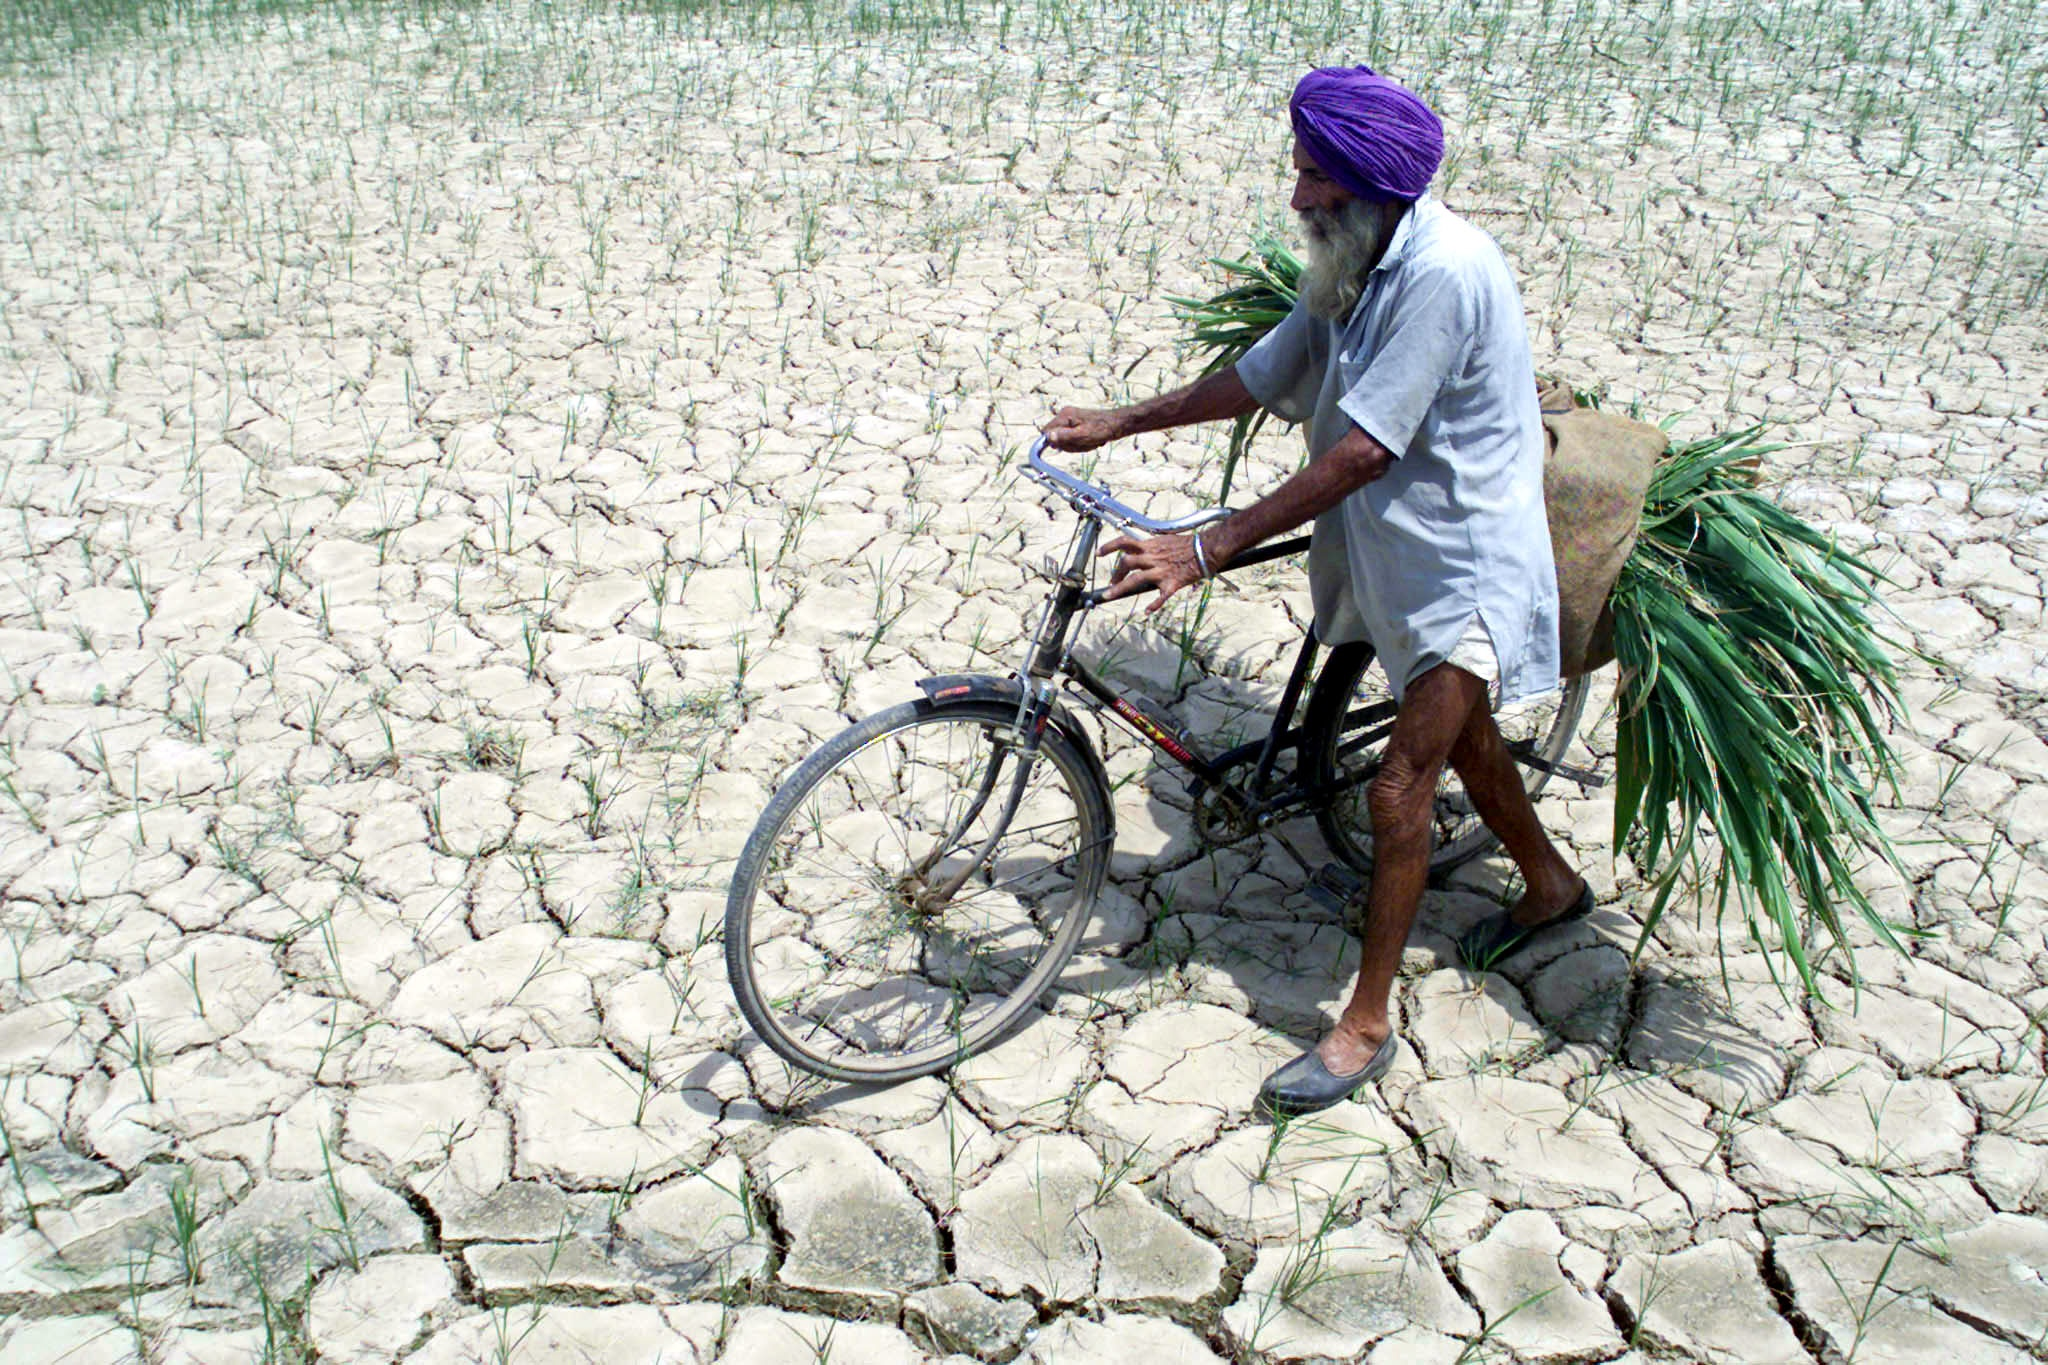 A Sikh farmer walks through a parched paddy field carrying fodder for his animals in the village of Morinda in India's northern state of Punjab, August 3, 2002. Rainfall across India was 30 percent lower than normal during the first two months of the monsoon season, causing the country's worst drought in a decade, [farm minister Ajit Singh said on Thursday.] - RTXLGMC